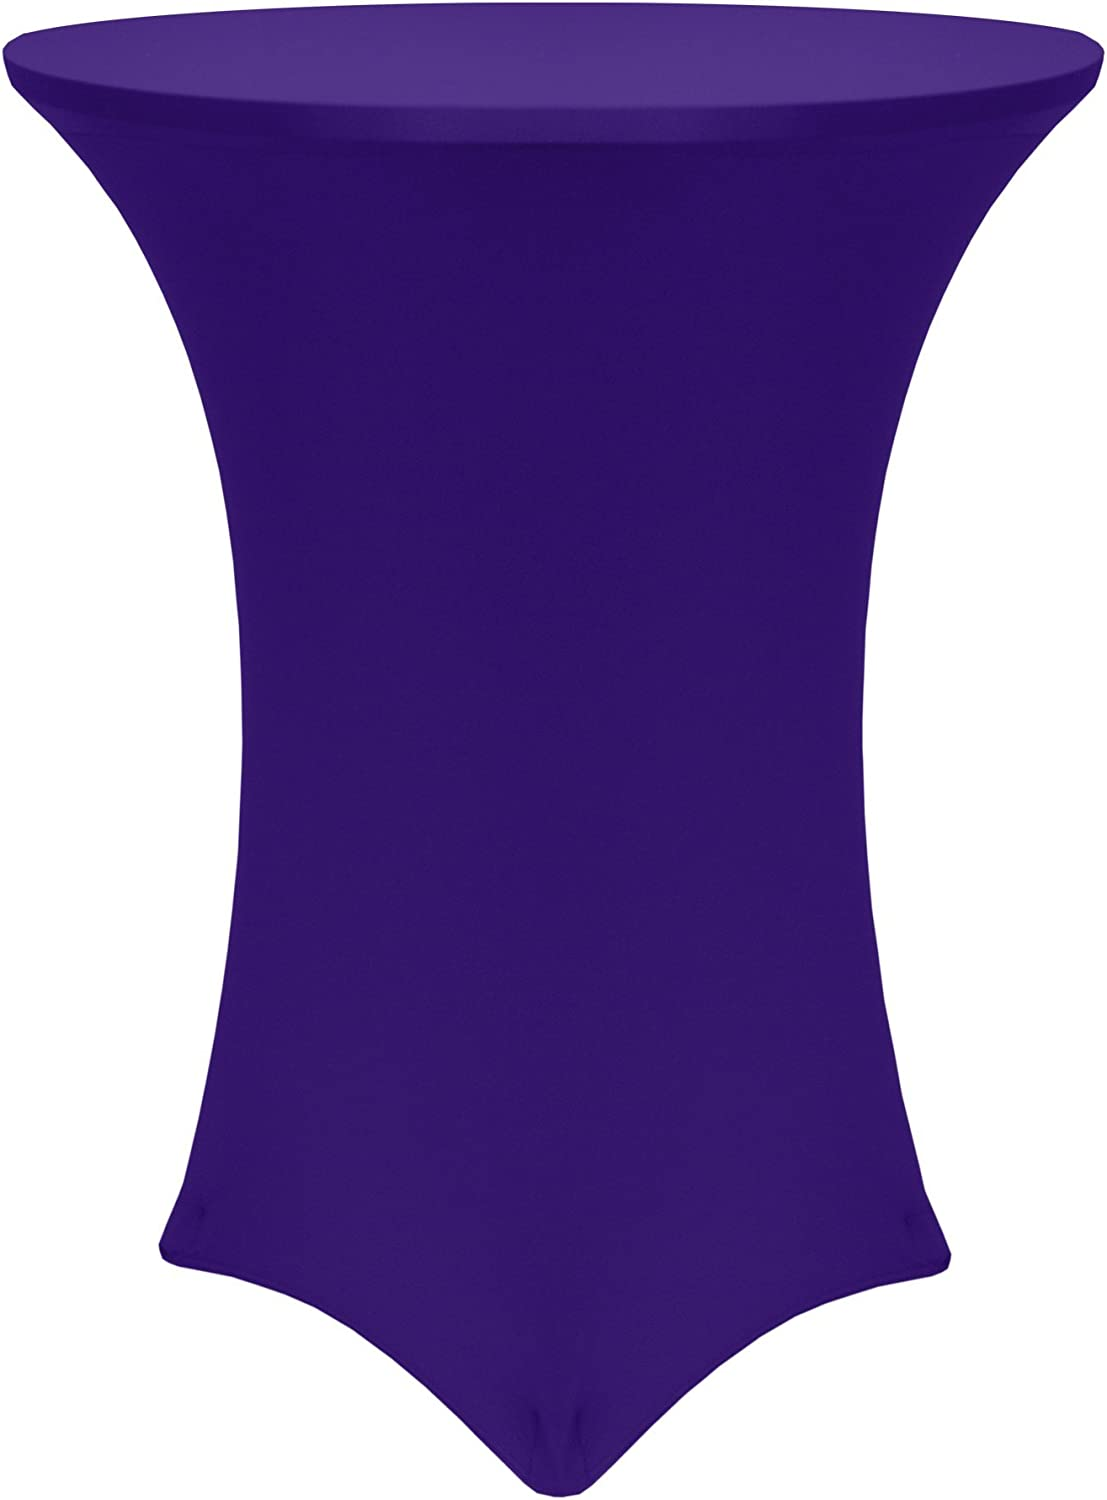 Ultimate Textile -55 Pack- 24-Inch Fitted Spandex Cocktail Albuquerque Mall Round High order